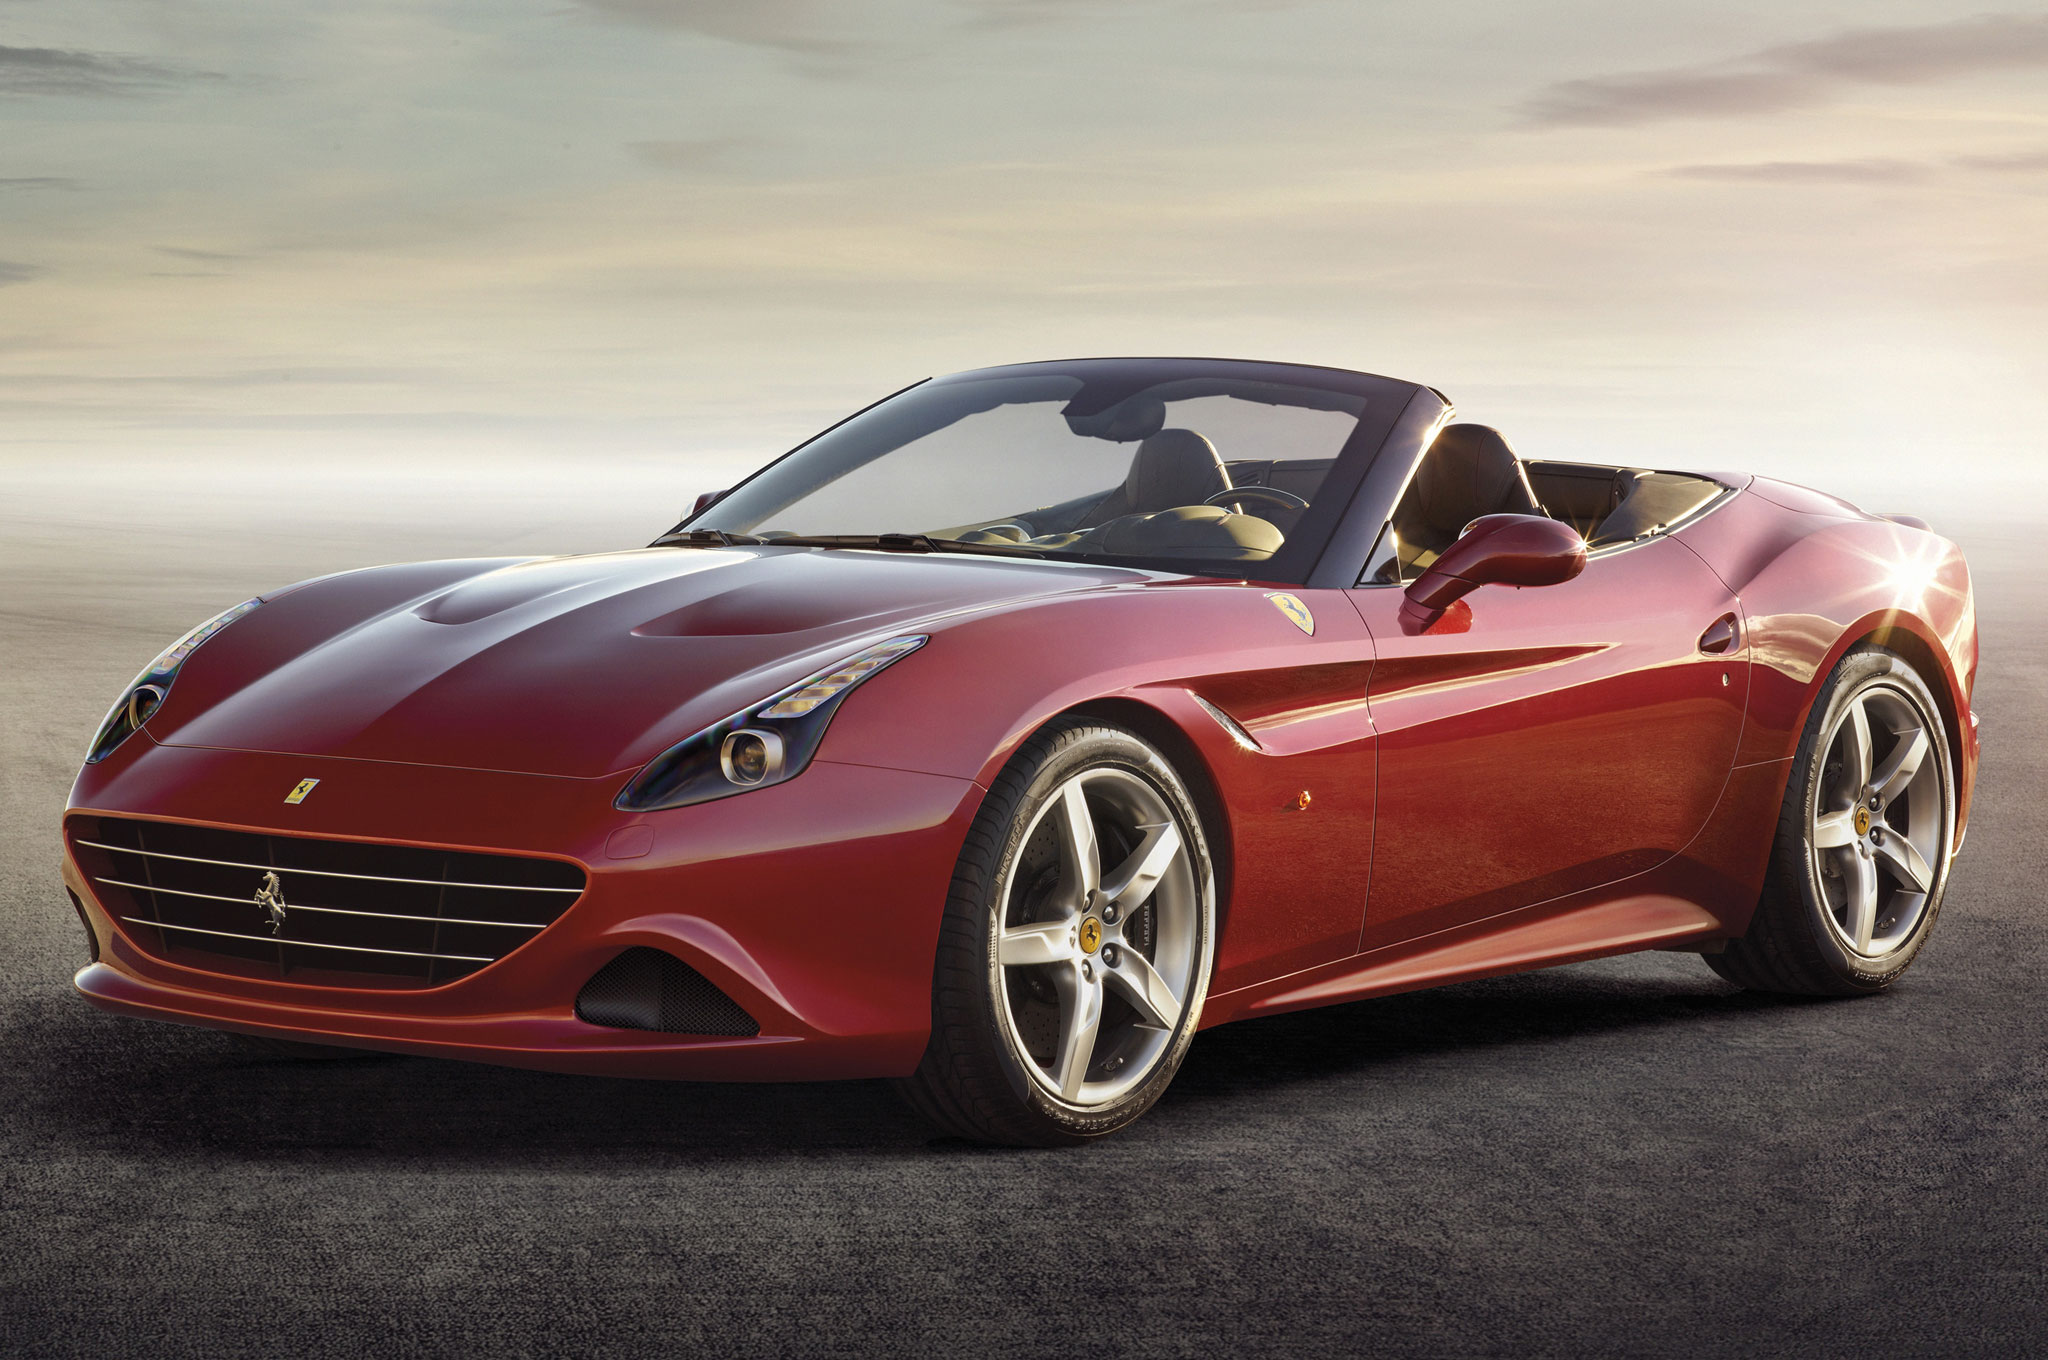 2015 Ferrari California T Front Three Quarters View